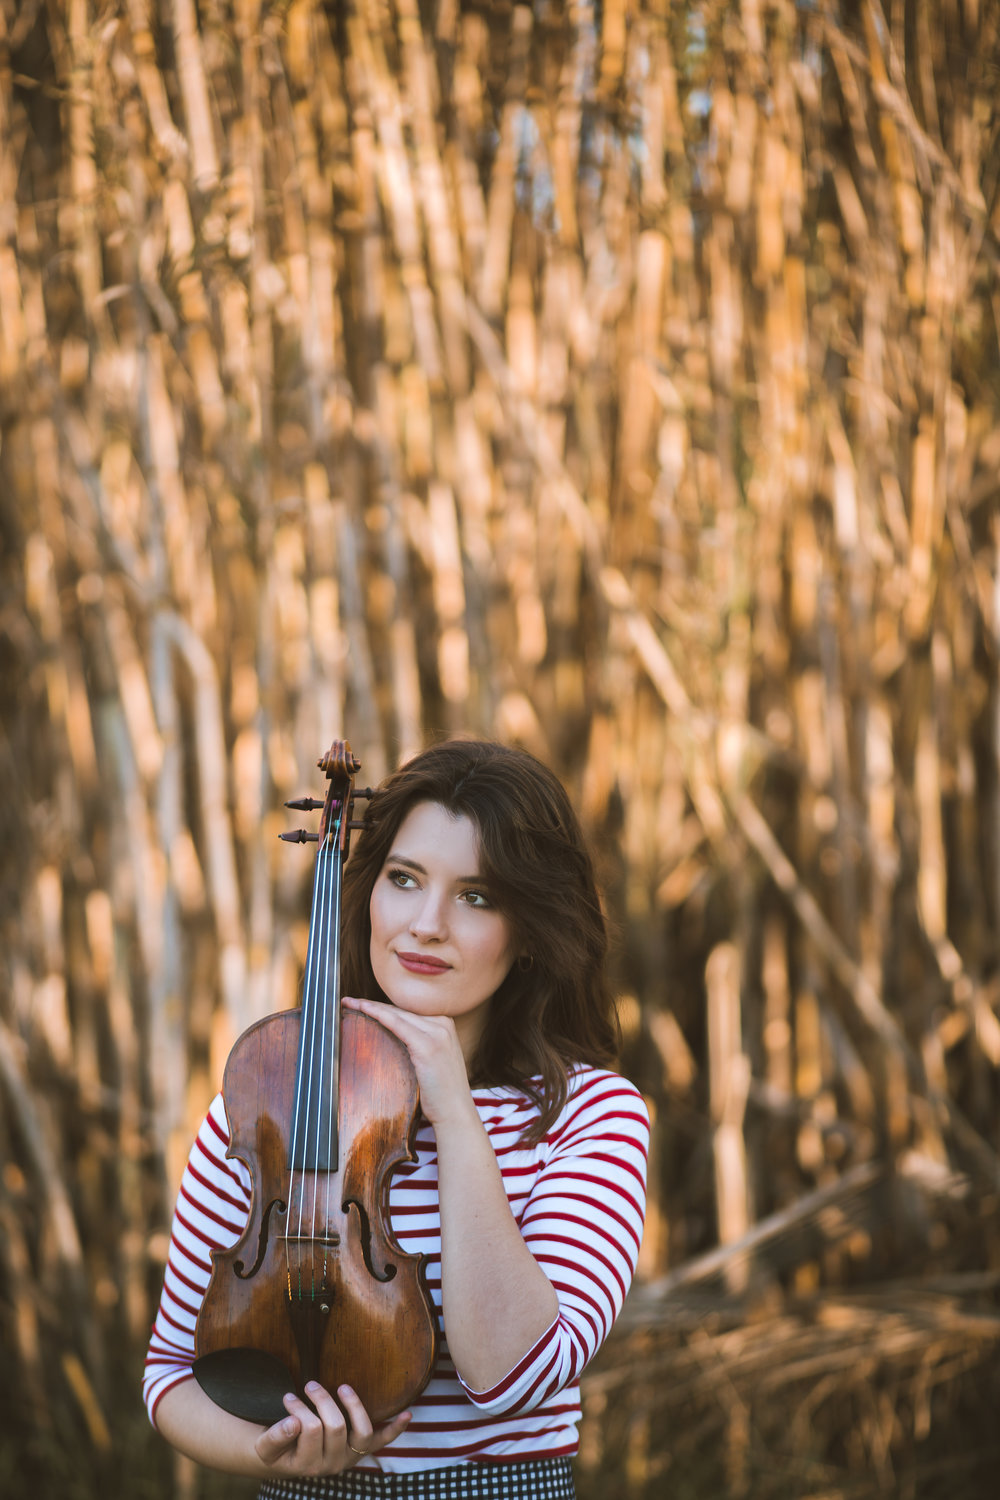 "English - Maria was born in Barcelona in 1993, and started his violin studies at the age of four with her father Cristian Florea, cellist and conductor of the Moldavian Chamber Orchestra. When she was seven years old, Maria performed her first concert as a soloist with the Montbèliard Orchestra (France).She studied with Gonçal Comellas (Spain) Stefan Gheorghiu (Romania) and Adelina Oprean (Switzerland) and has also attended master classes with Ivry Gitlis, Maxim Vengerov, Eduard Schmieder, Pamela Frank, Yair Kless, Günther Pichler among others.She attended the Reina Sofia Music School in Madrid, from 2010 to 2014 under the guidance of violin professors Zakhar Bron and Yuri Volguin. She was also a member of the ""Albeniz de Prosegur"" chamber music group with professors Heime Müller and Marta Gulyas. She was awarded the ""Outstanding string quartet Award"" 2012-2013, given by Her Majesty the Queen of Spain.The ""Albeniz de Prosegur"" group, performed at many concert halls of Spain, including ""Auditiorio Sony"", the very prestigious Auditorio Nacional de Madrid, and they where live recorded several times by the Spanish National Radio.She has performed as soloist in ""Palau de la Musica Catalana"" (Barcelona), Ateneu and Radio Hall of Bucharest (Romania), Organ Hall (Republic of Moldova), Sala Thalia of Sibiu (Romania) among others and given recitals in many countries such as France, Germany, Switzerland, Austria, Romania, Republic of Moldova, Bulgaria, United Kingdom Poland, Ecuador and Spain.Since 2012, Maria stablished a regular collaboration with the Spanish pianist Juan Barahona. They have performed as a duo in Ecuador, Germany, Austria, England, Spain, Romania and Republic of Moldavia and they have lately developed a great interest in introducing Spanish music all over the world with works such as Joaquín Turina ""Poema de una Sanluqueña"" and Manuel de Falla ""Canciones populares Españolas"".Maria has received several prizes and awards in different competitions as ""Jeunesses Musicales"" in Bucharest (Romania), ""Paper de Musica"" (Barcelona), ""Wieniawski Competition"" in Lublin (Poland), ""Young Virtuosos"" in Sofia (Bulgaria), and with her duo she became a finalist of the ""Parkhouse Award"" which took place at the Wigmore Hall of London.She completed her Master degree with distinction at the Royal Academy of Music in London with professor György Pauk.At the moment she continues her Postgraduate studies at the University Mozarteum in Salzburg with professor Rainer Schmidt."